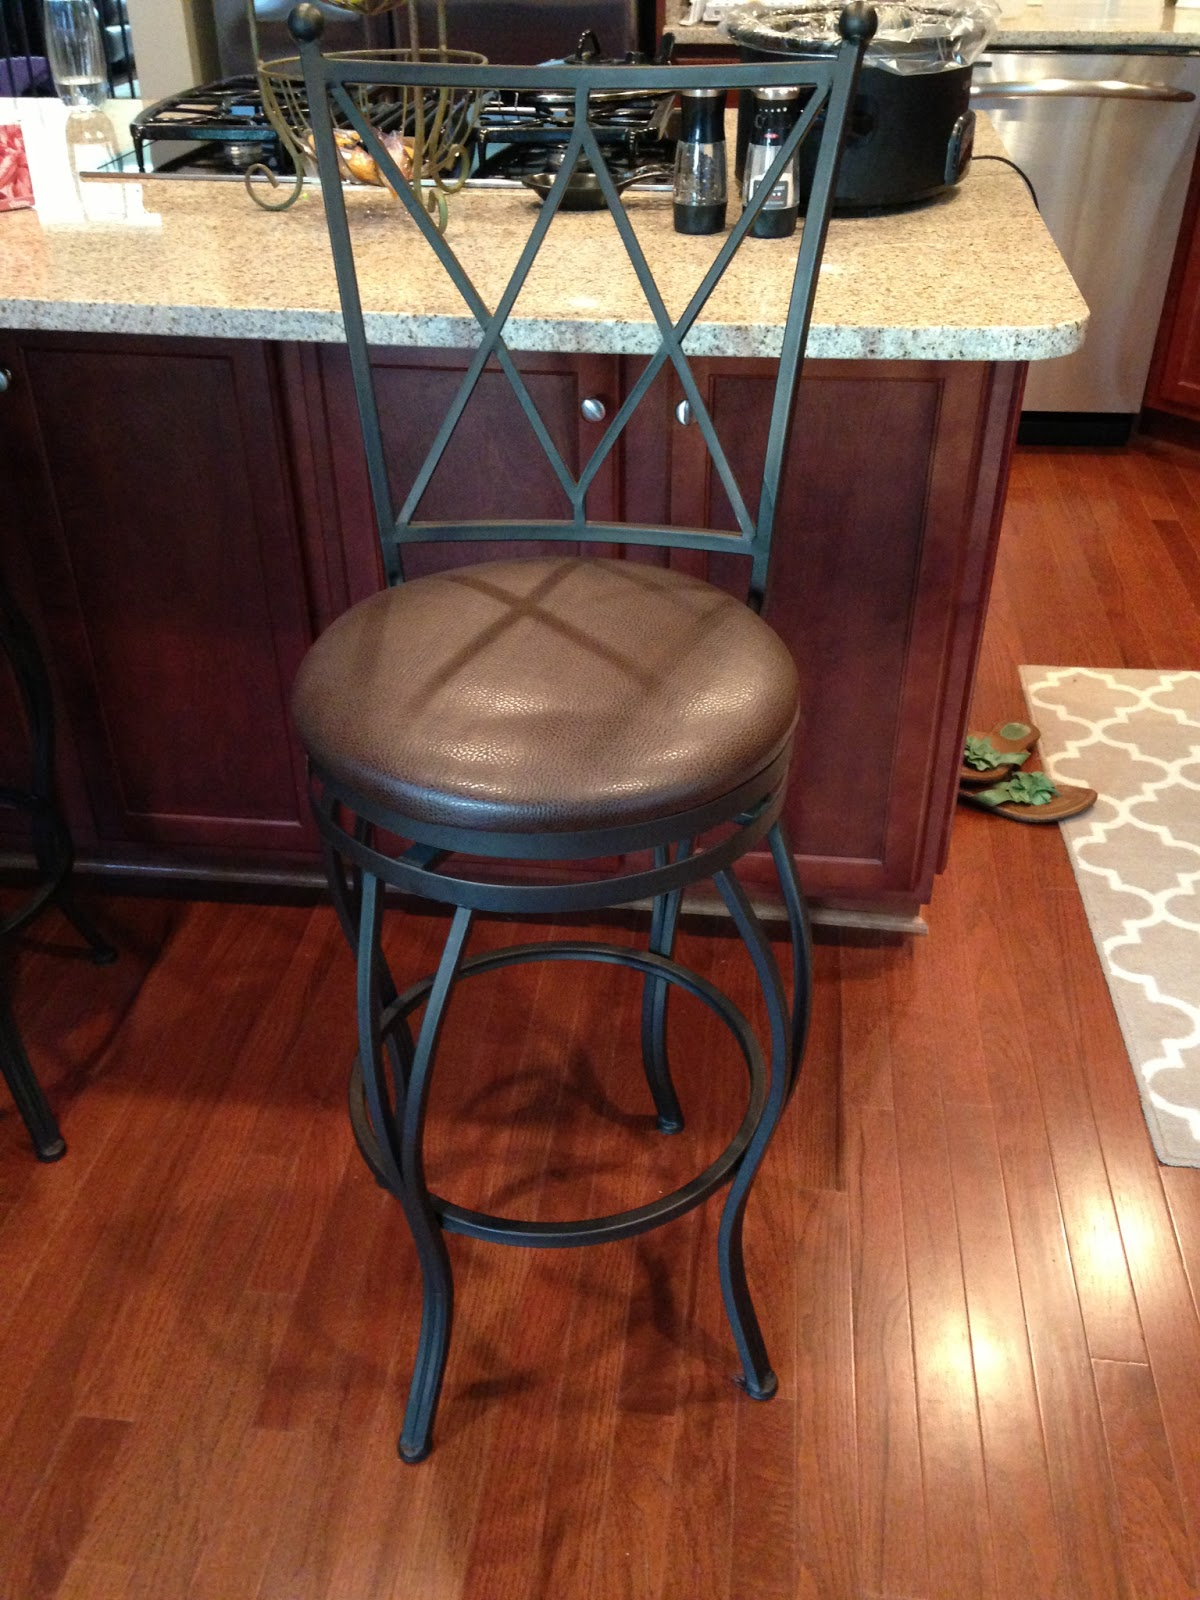 House Of Thrifty Decor Craigslist Find New Bar Stools